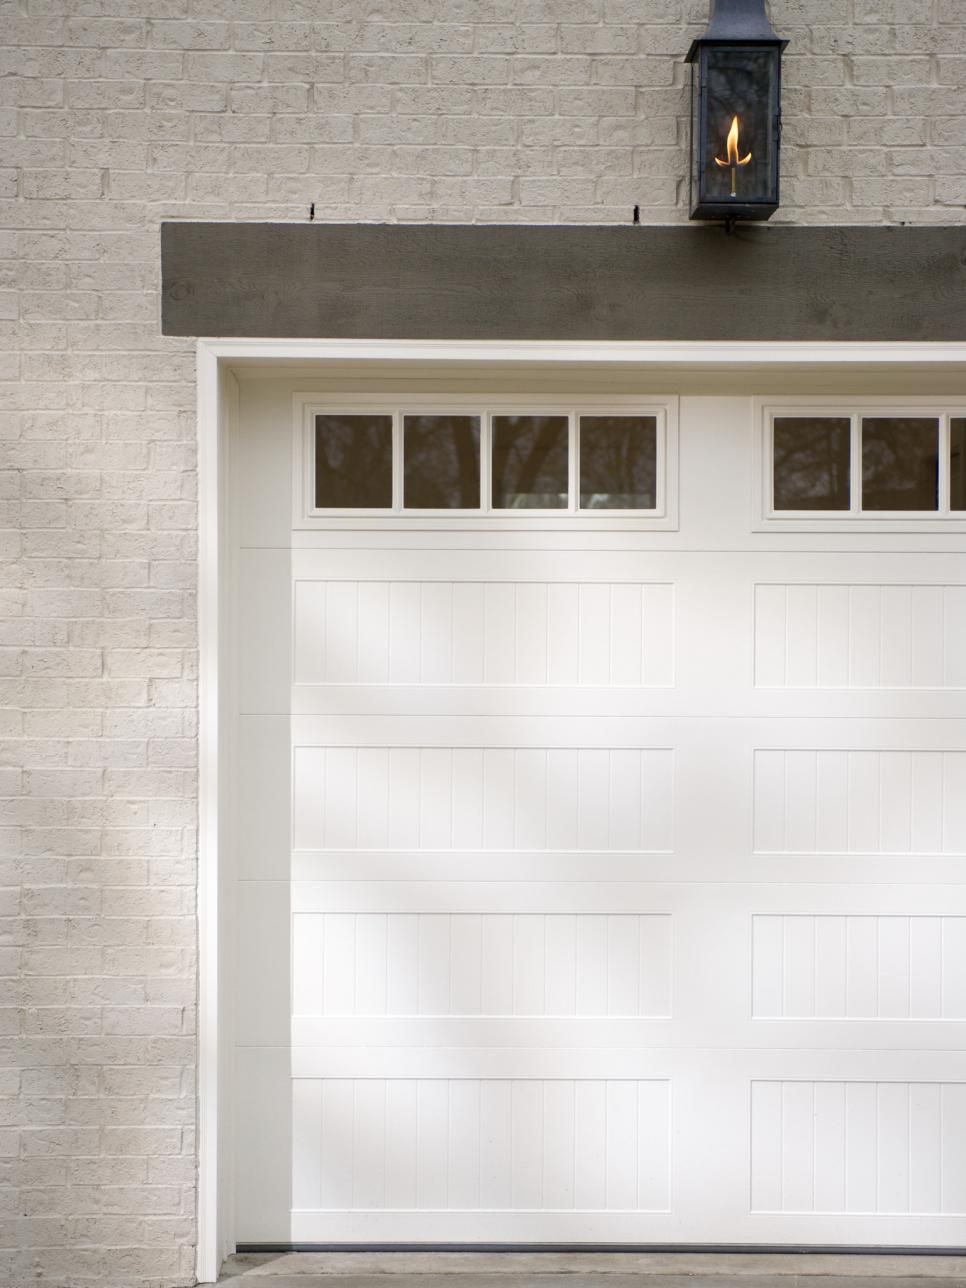 Garage Door Designs Pinterest Garage doors Hgtv and Doors